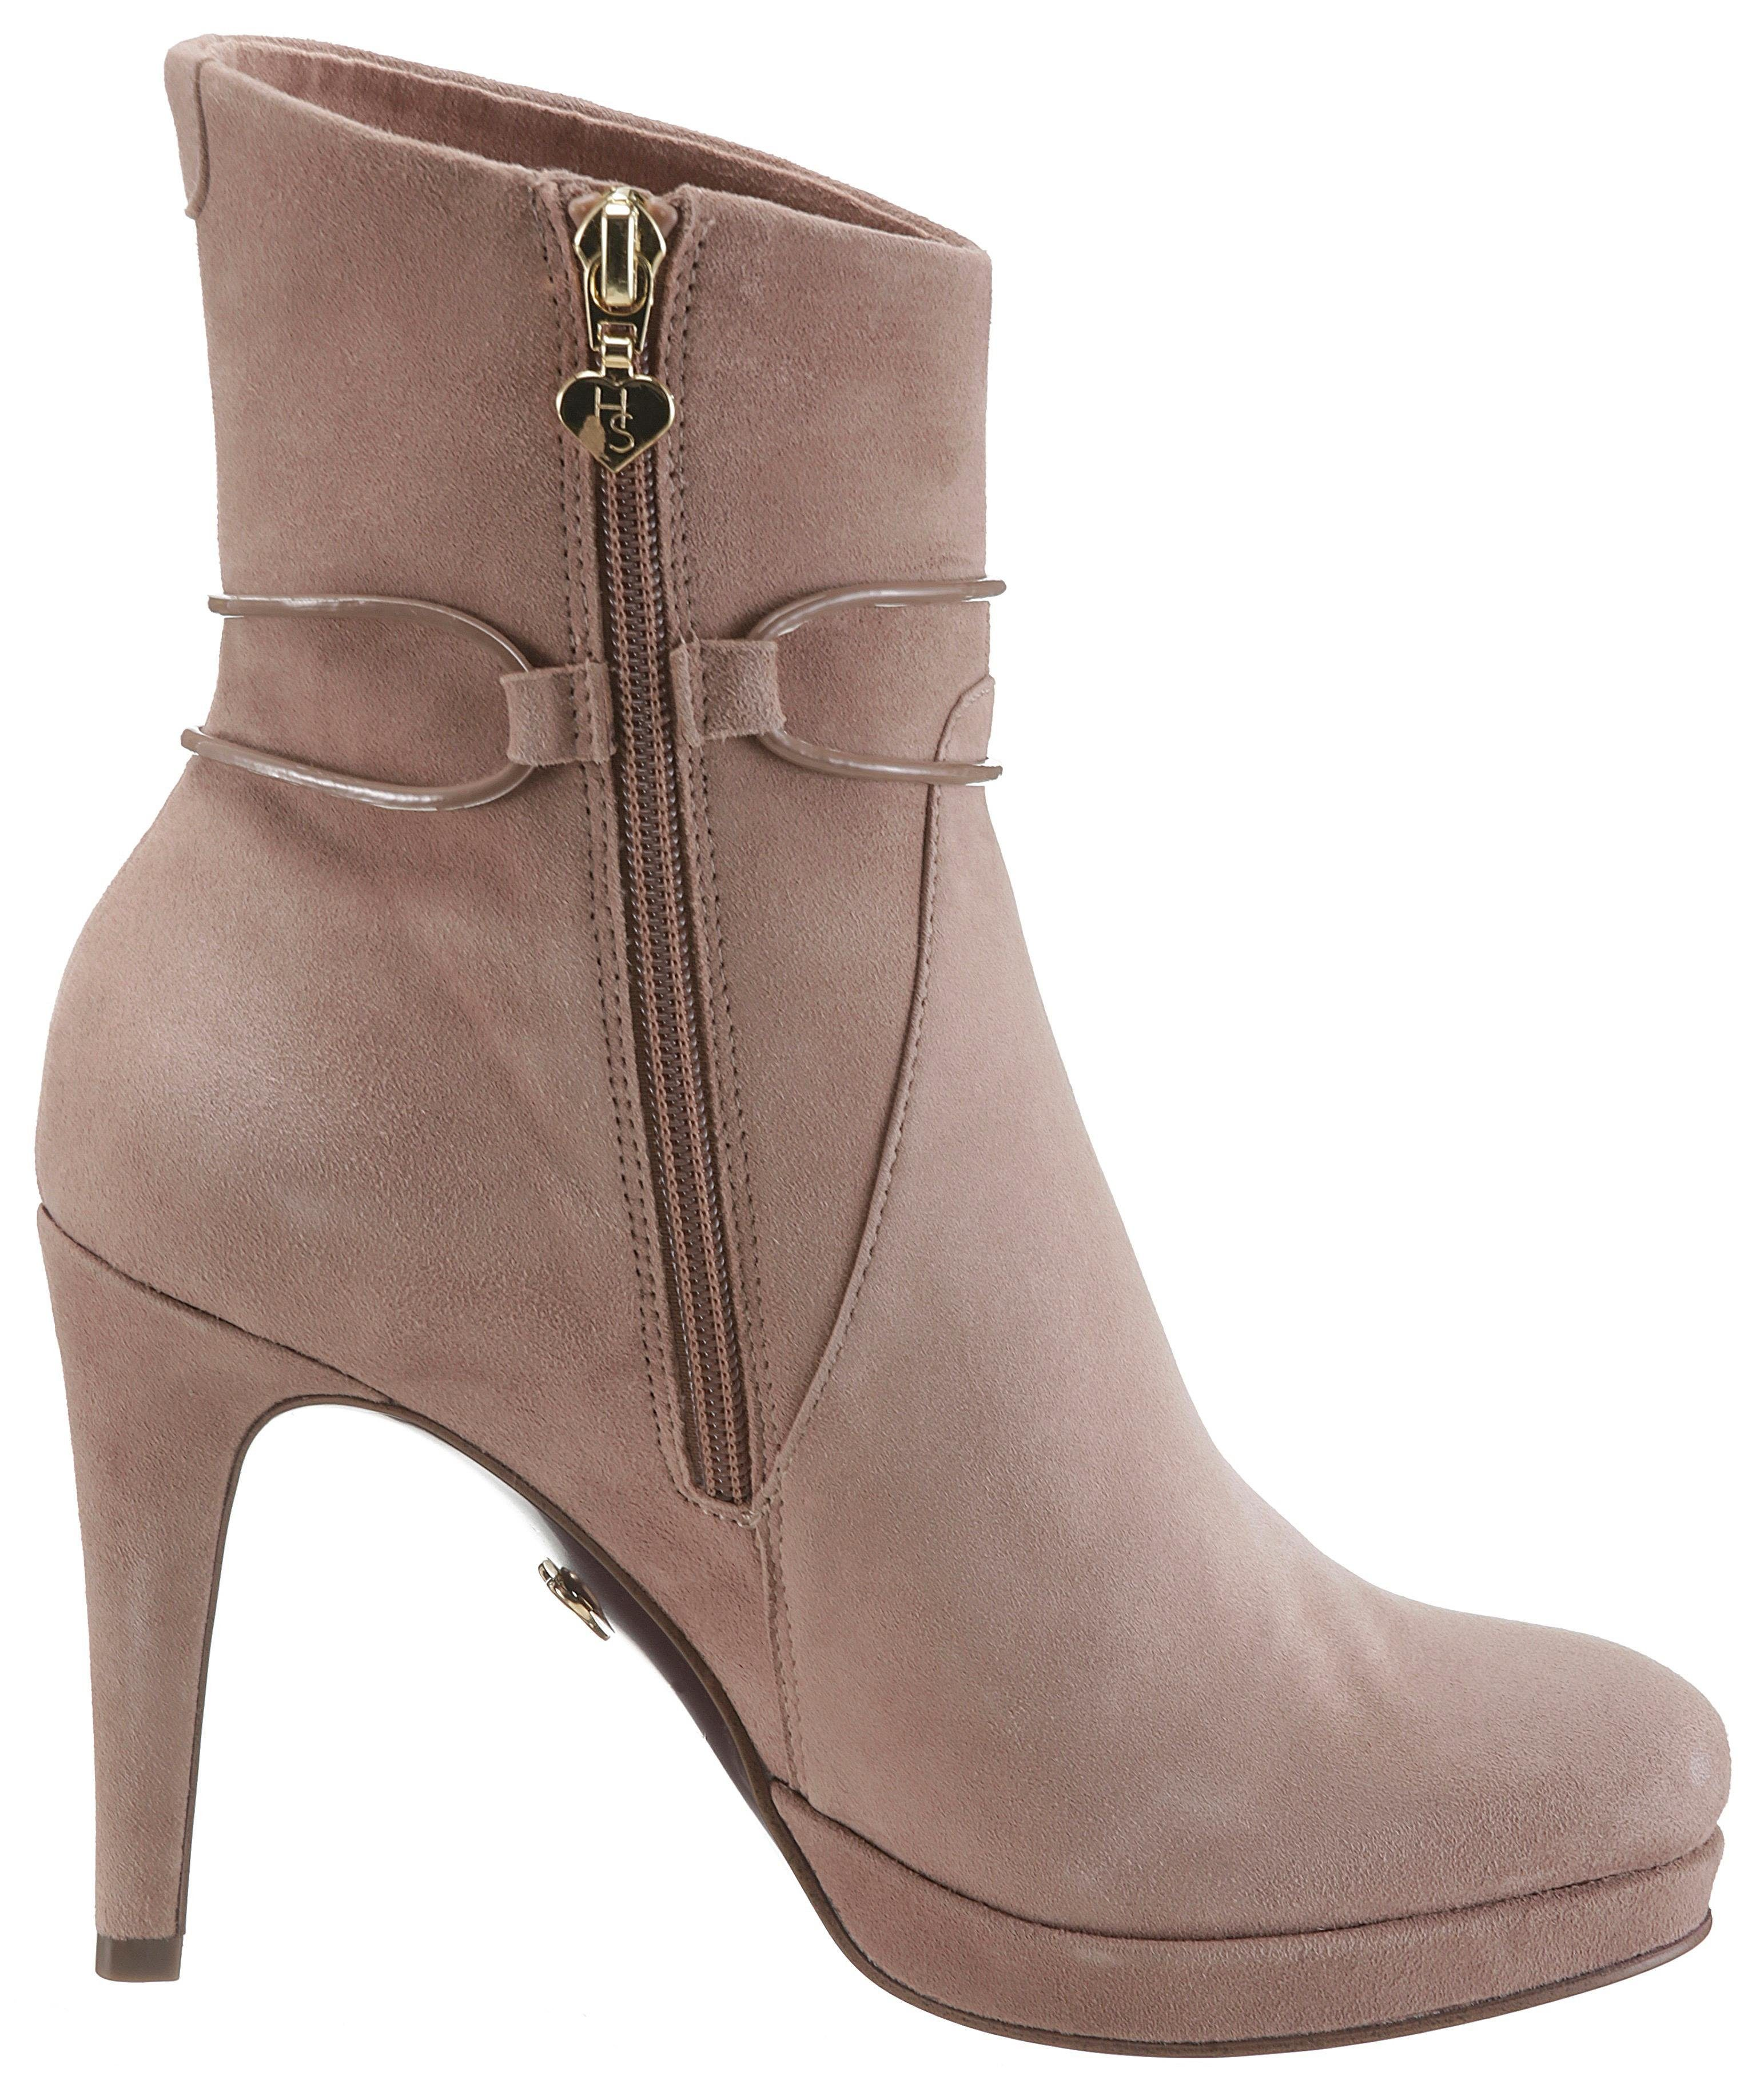 Mode &7710 Tamaris »Heart goldfarbenen & Sole« High-Heel-Stiefelette mit goldfarbenen »Heart Schmuckelement b7c4e3